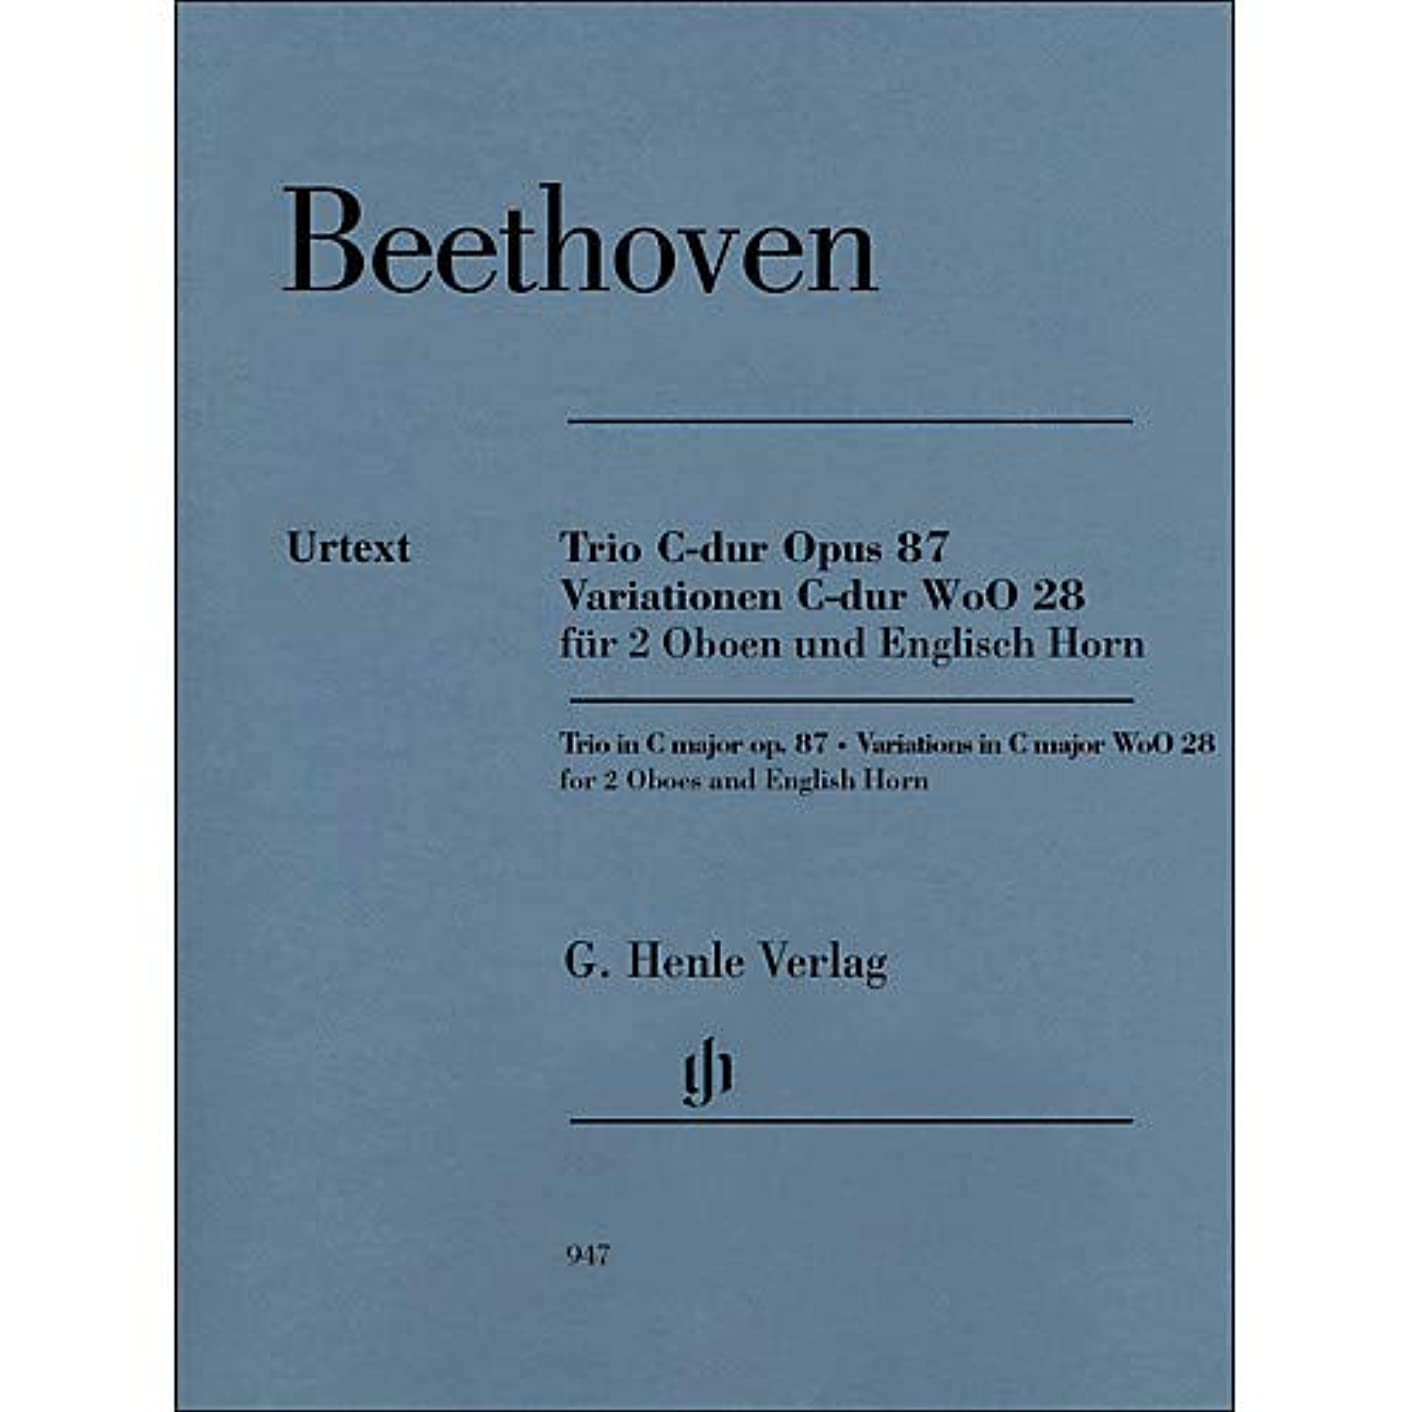 Trio In C Major Op. 87 Variations In C Major Woo28 for 2 Oboes And English Horn By Beethoven/Voss